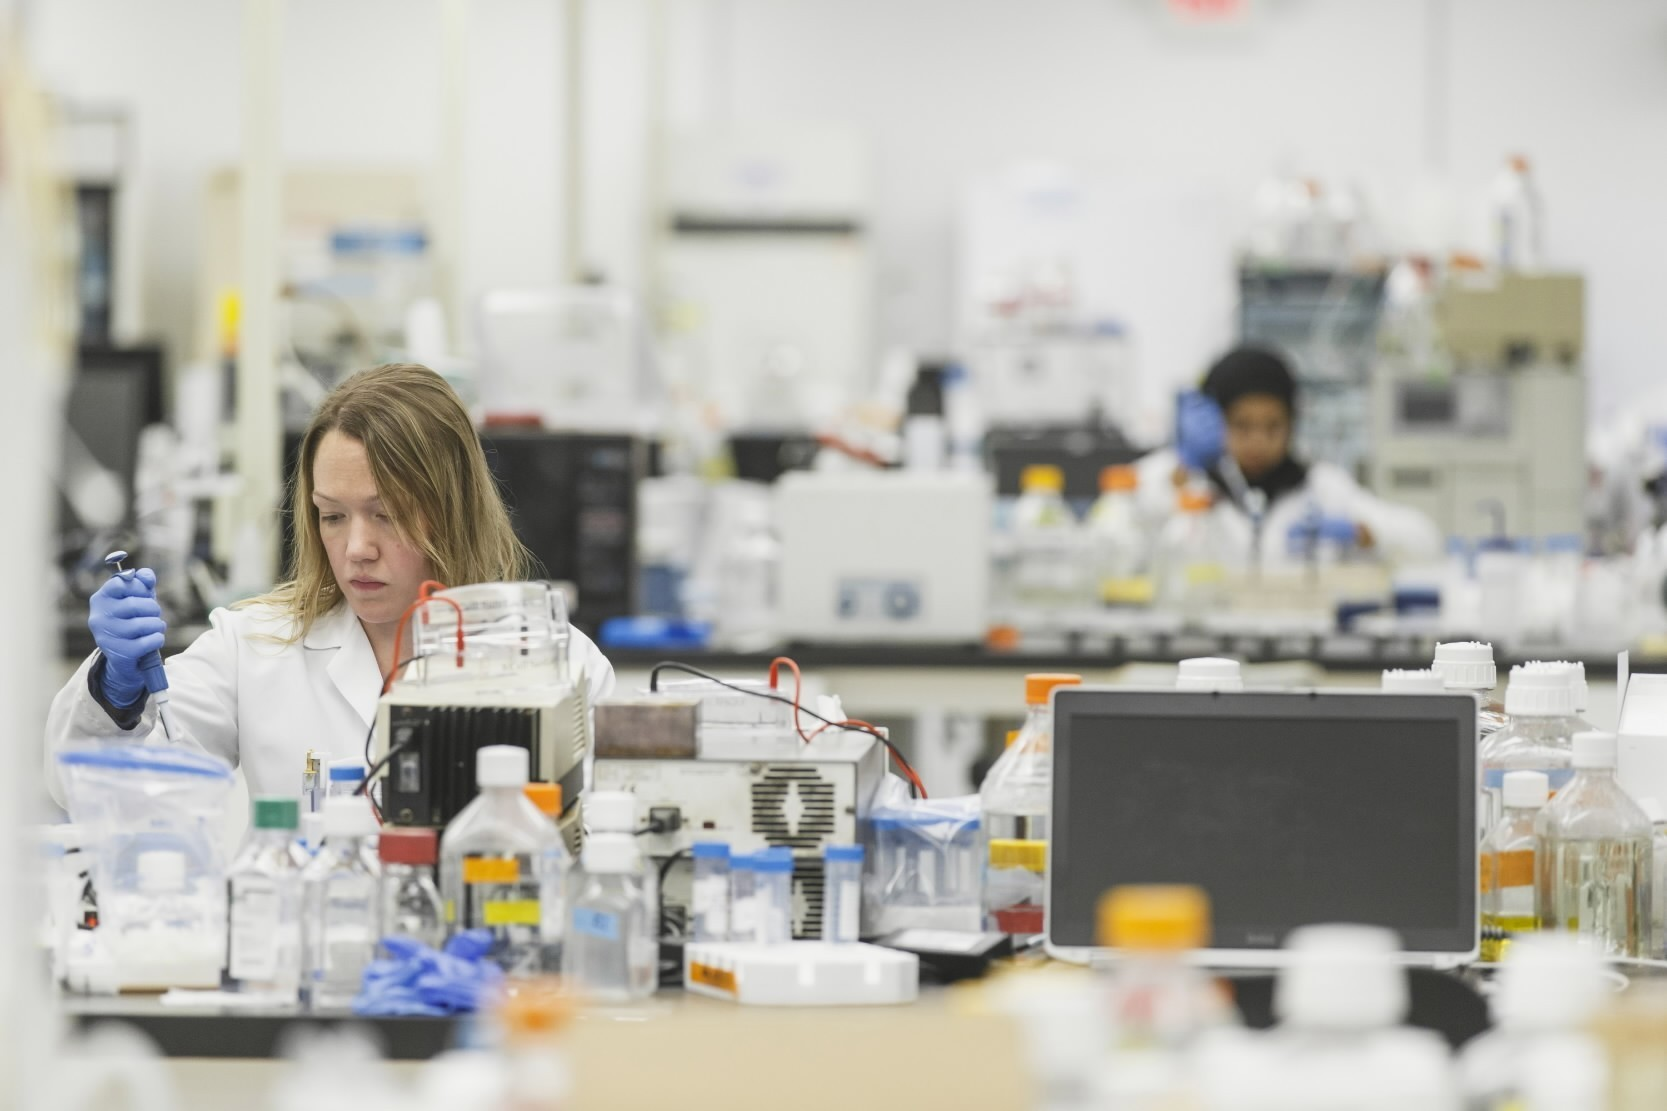 Protein Sciences Struggles For Market Share Of Flu Vaccine